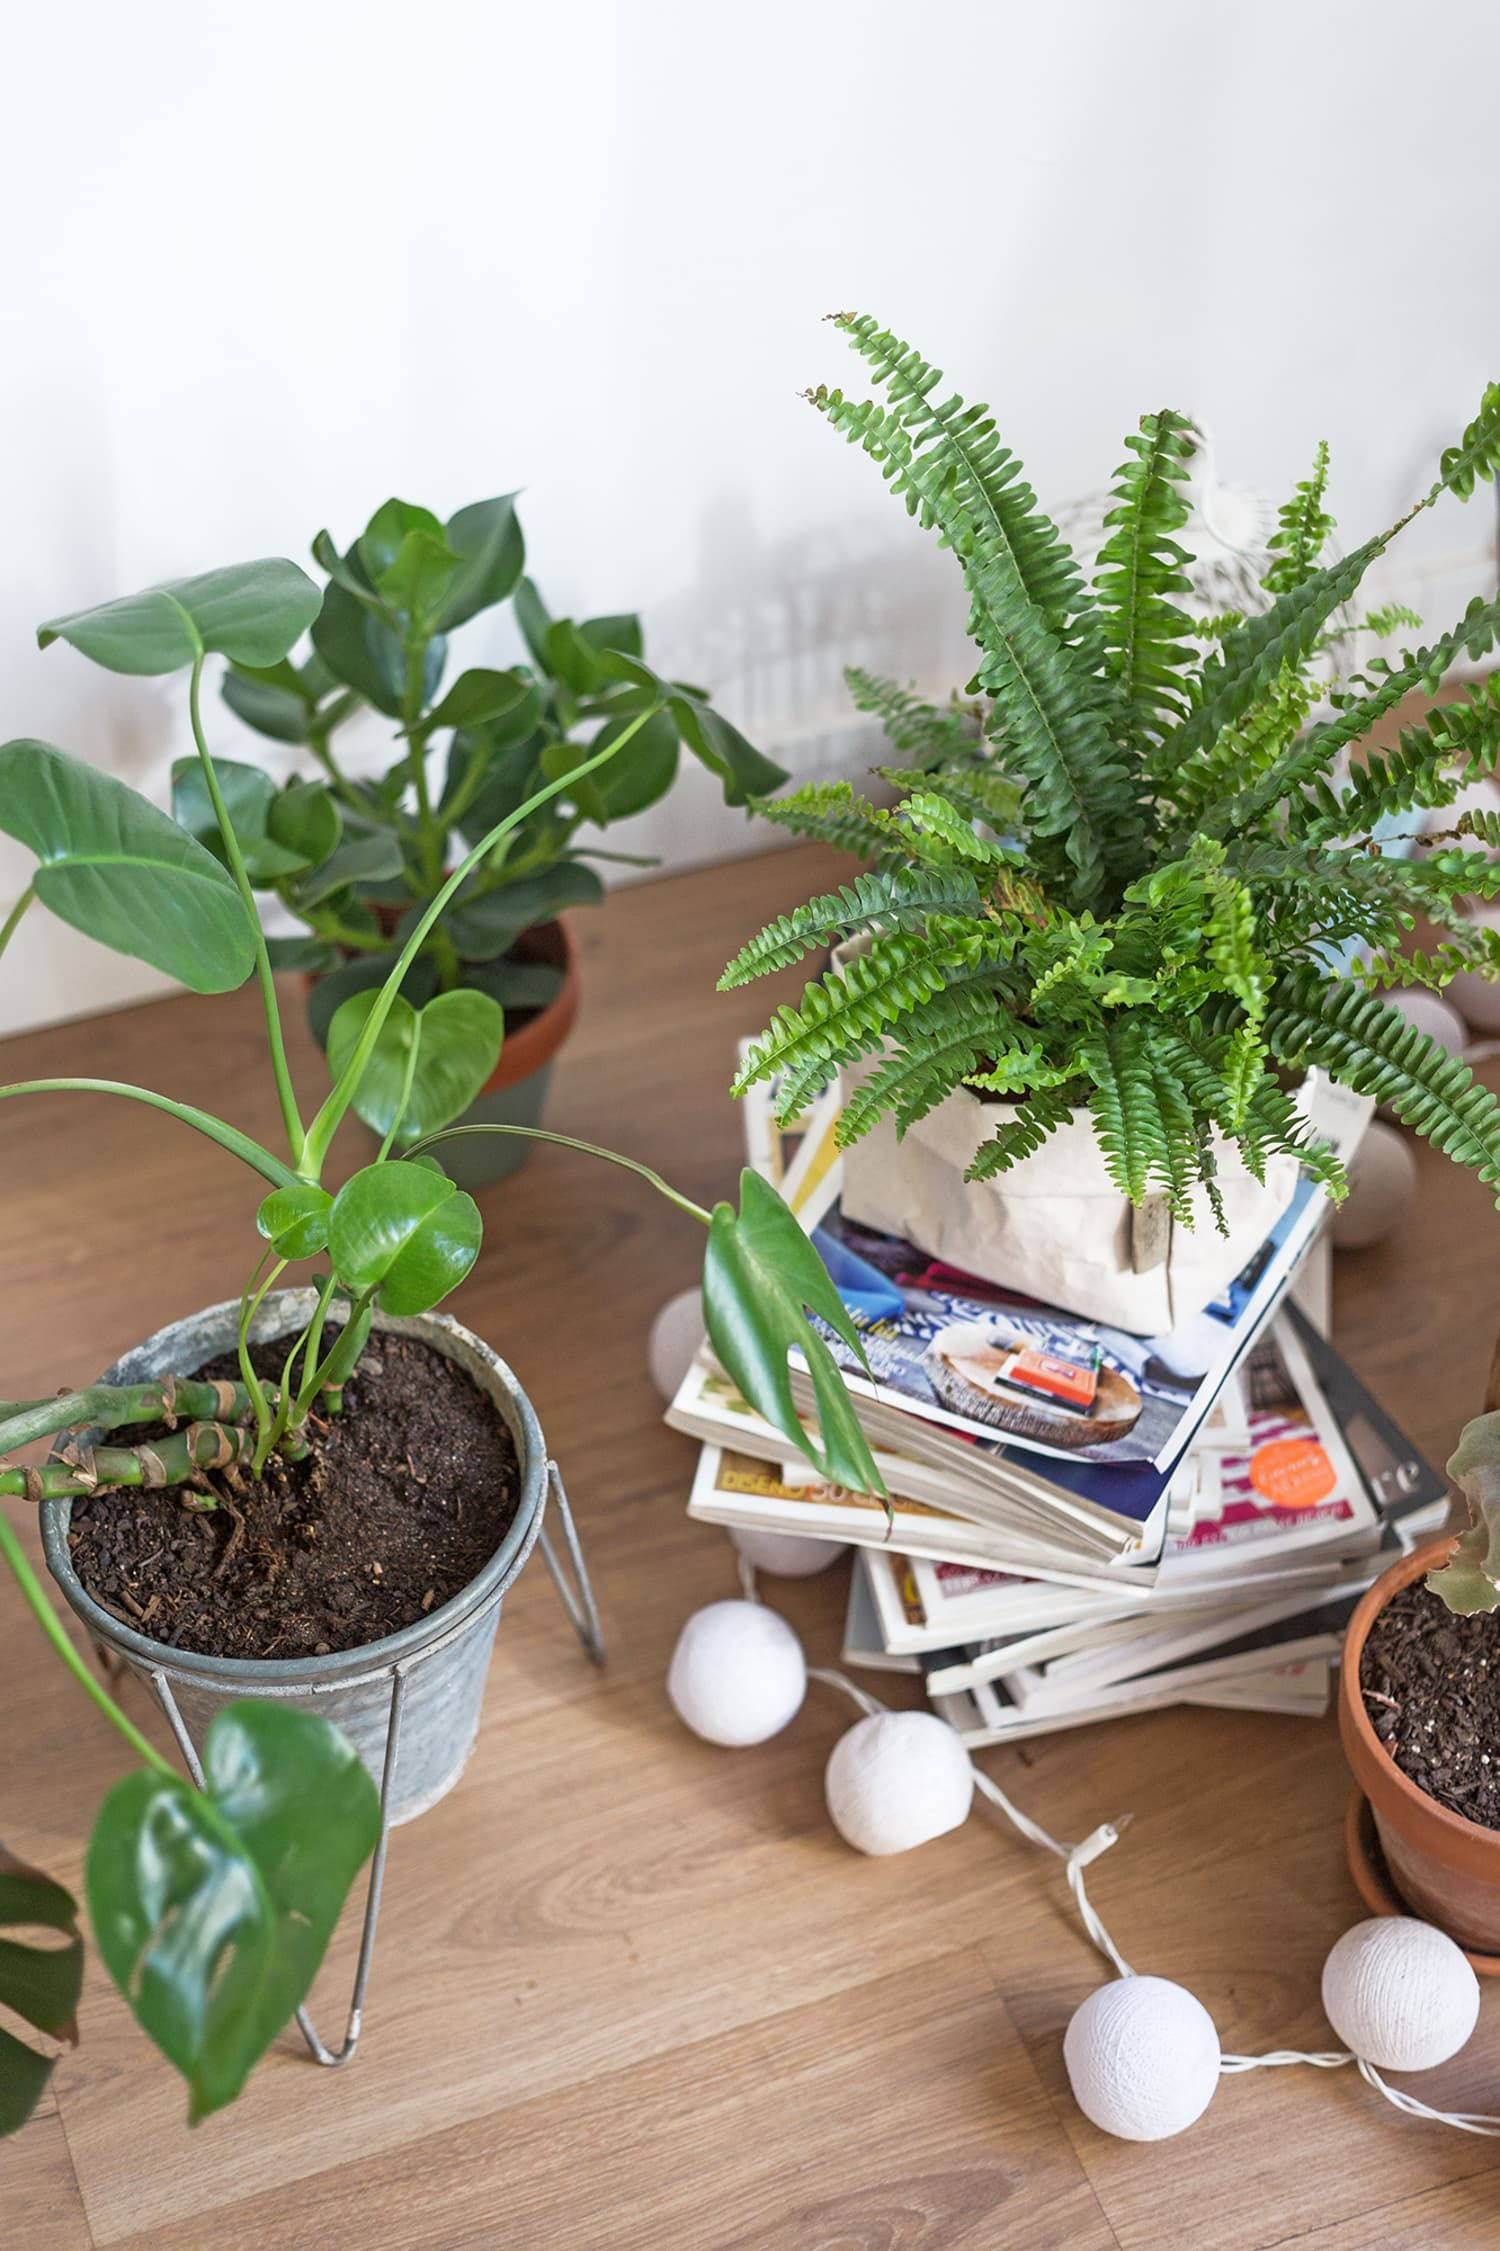 29 Plant Hacks to Upgrade Your Green Thumb, Practically for Free is part of Plant hacks, Plants, Plant care, Green thumb, Indoor plants, Rustic remodel - Whether your thumb is green or black, whether you have one plant or a jungle's worth, here are some plantcare and gardening tips that can help keep your greenery not only alive, but lush